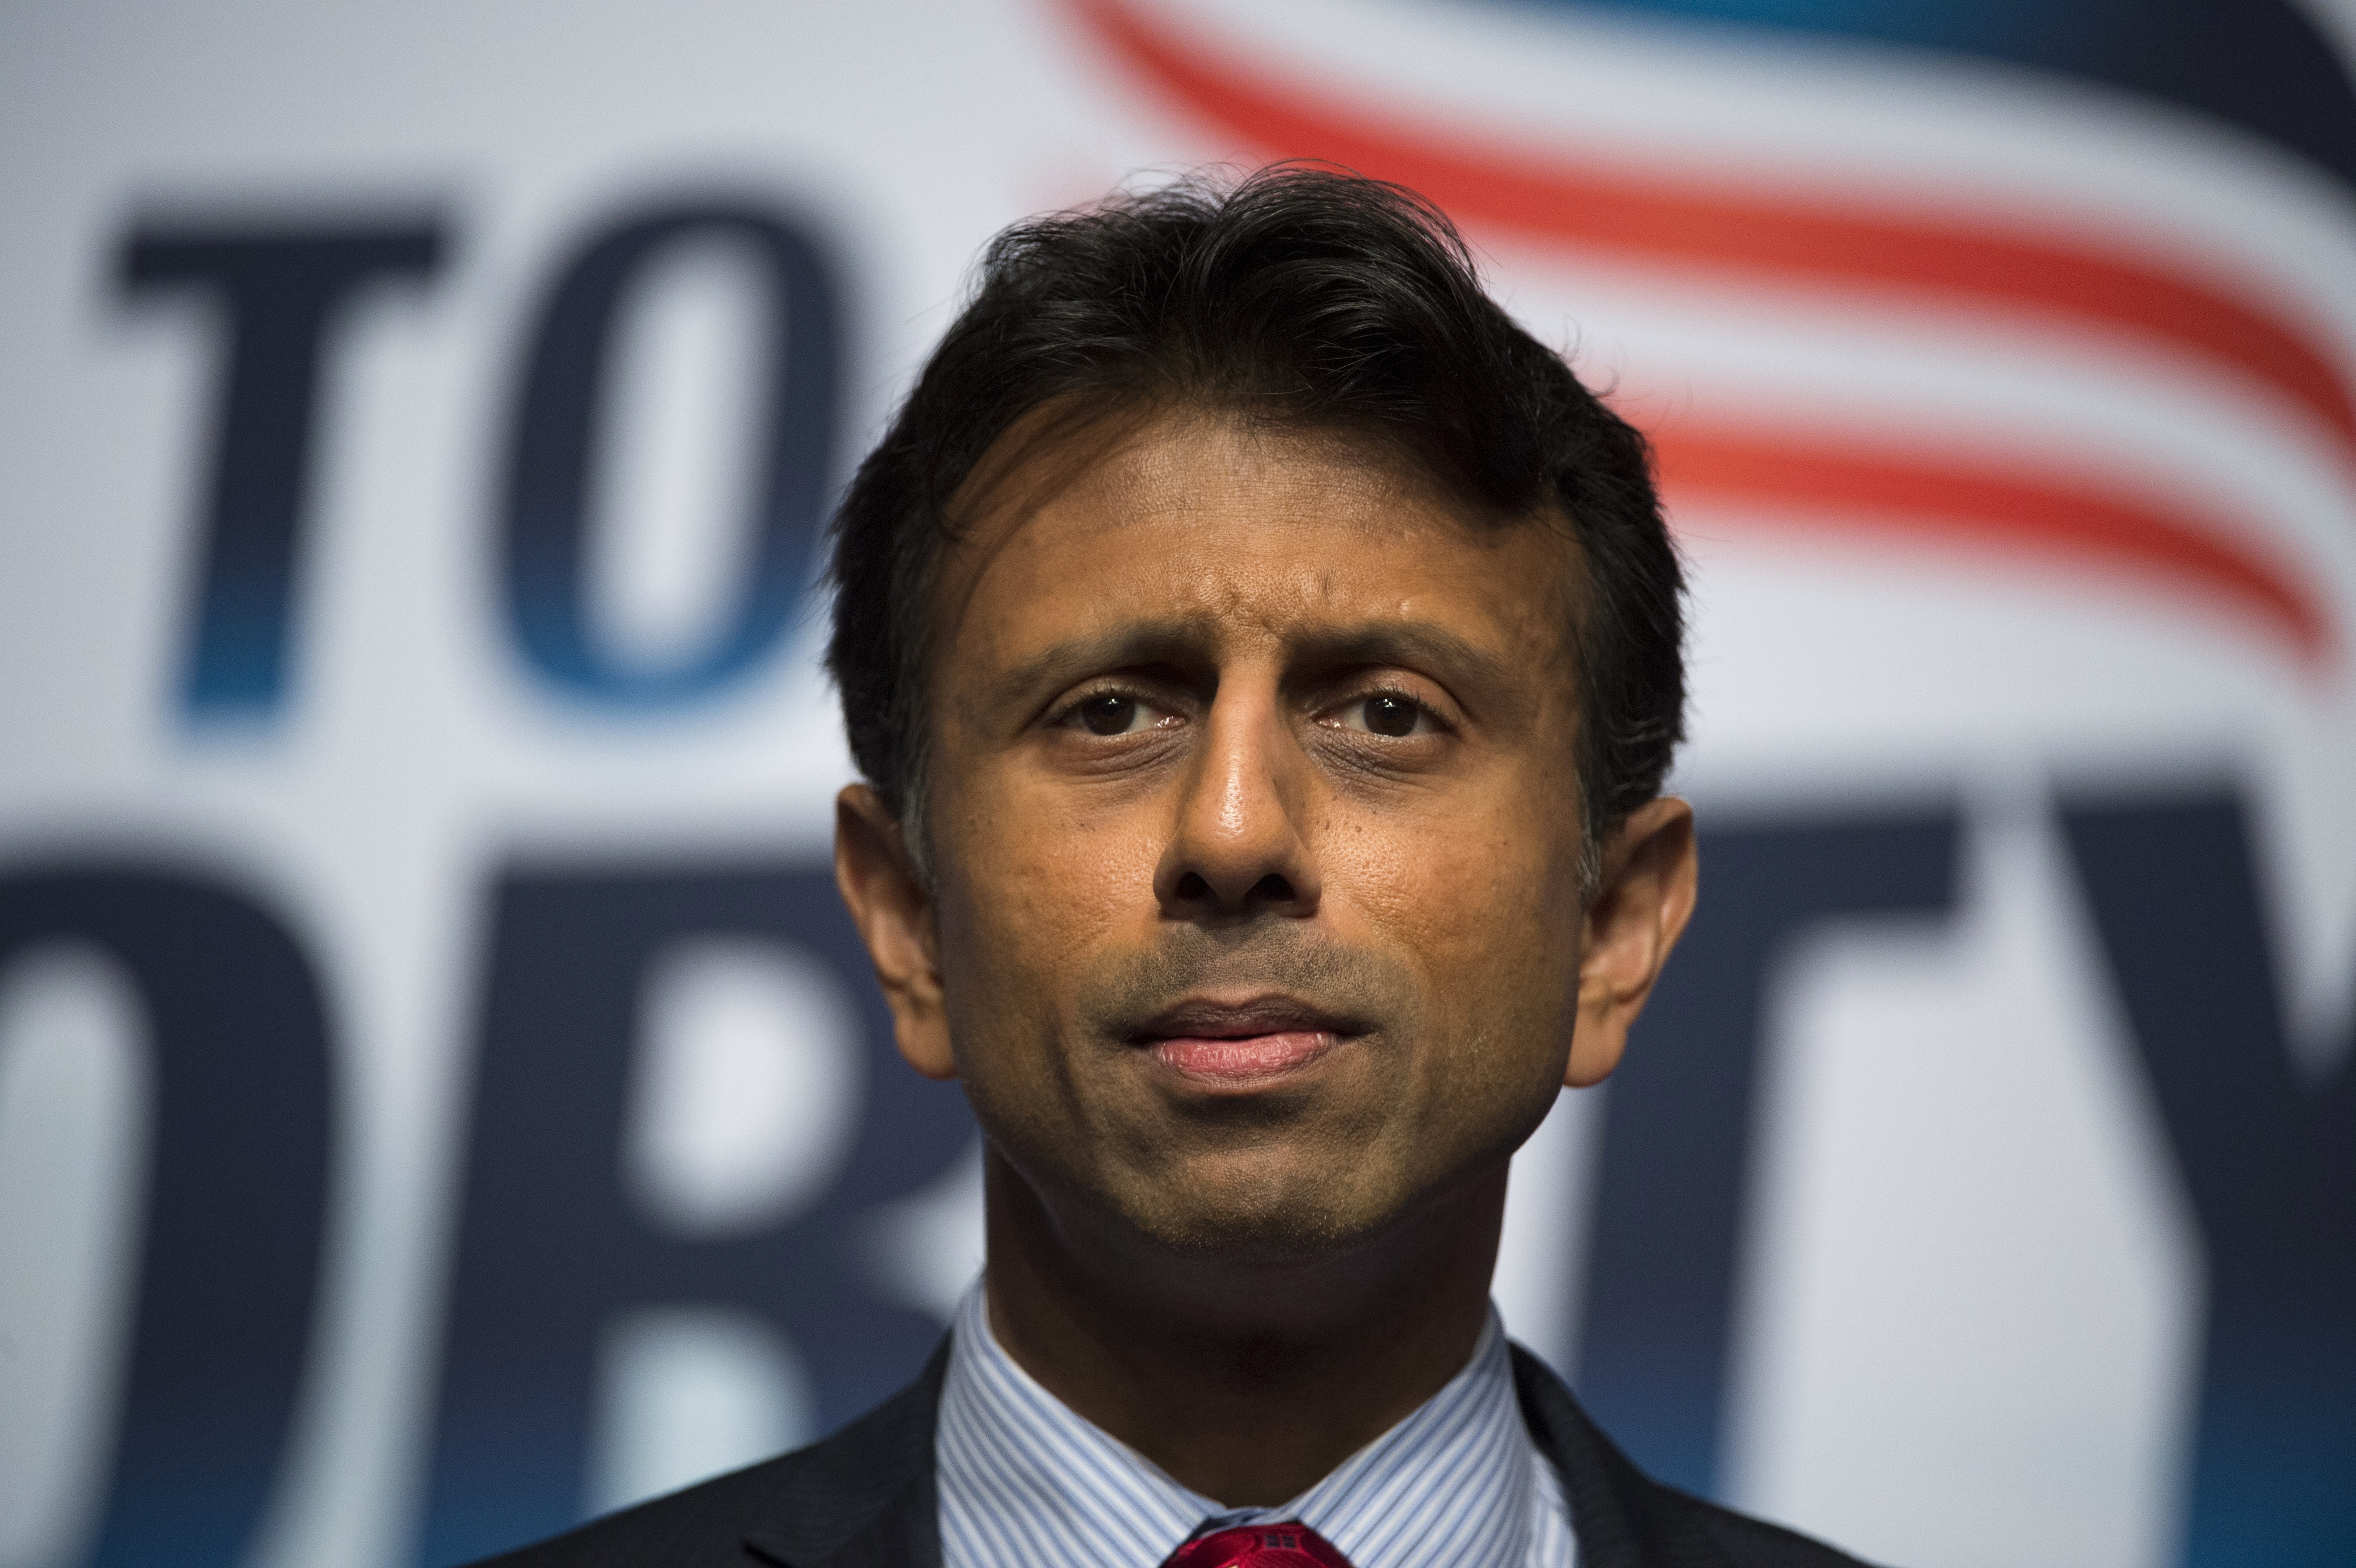 Louisiana Gov. Bobby Jindal delivers the keynote address during Faith and Freedom Coalition's Road to Majority event in Washington on June 21, 2014.